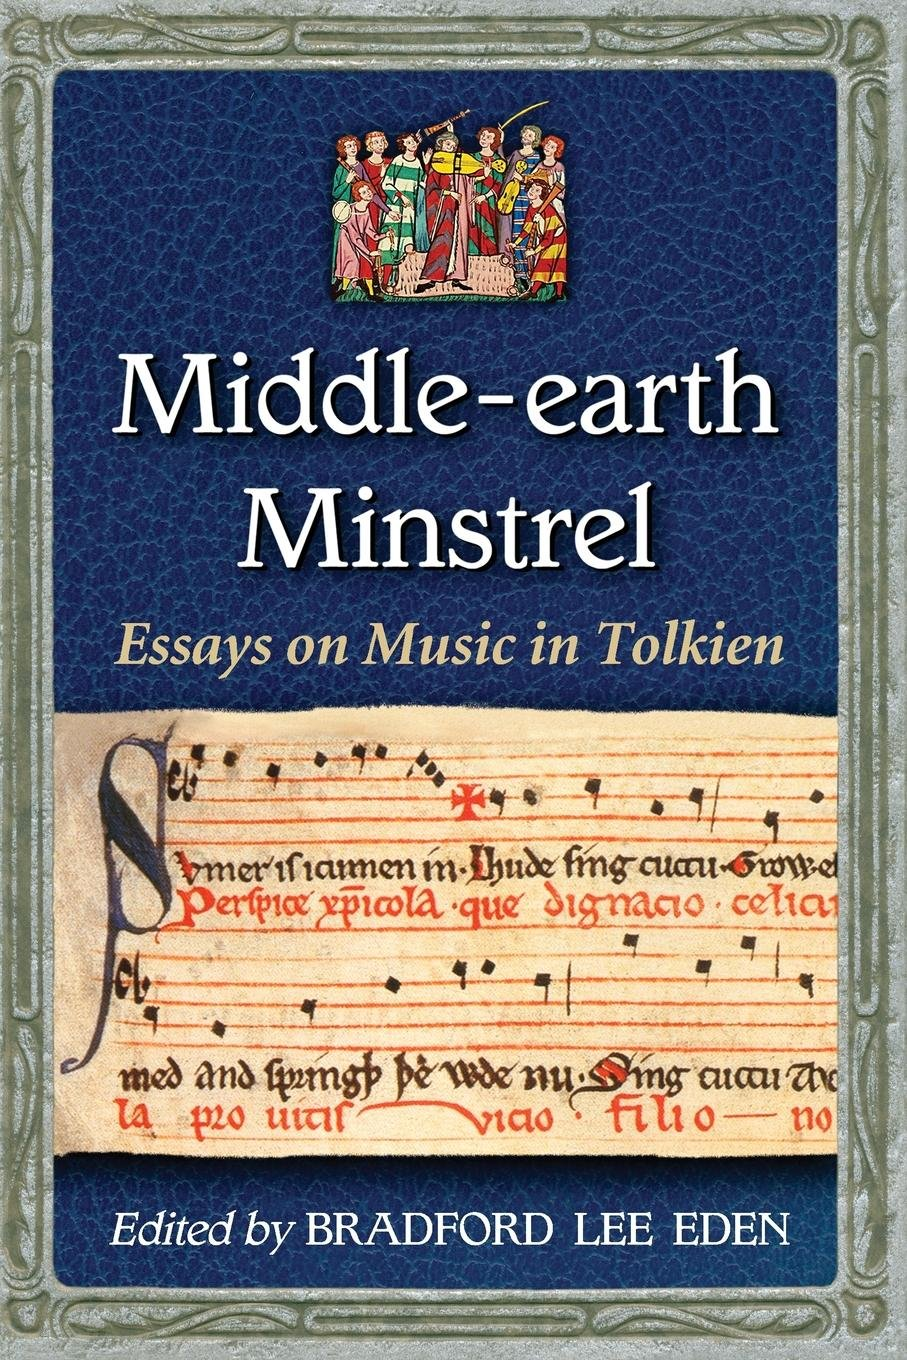 Middleearth Minstrel Essays On Music In Tolkien Bradford Lee Eden  Middleearth Minstrel Essays On Music In Tolkien Paperback  April   Thesis Statements Examples For Argumentative Essays also Essay On English Language Essay On Healthy Foods